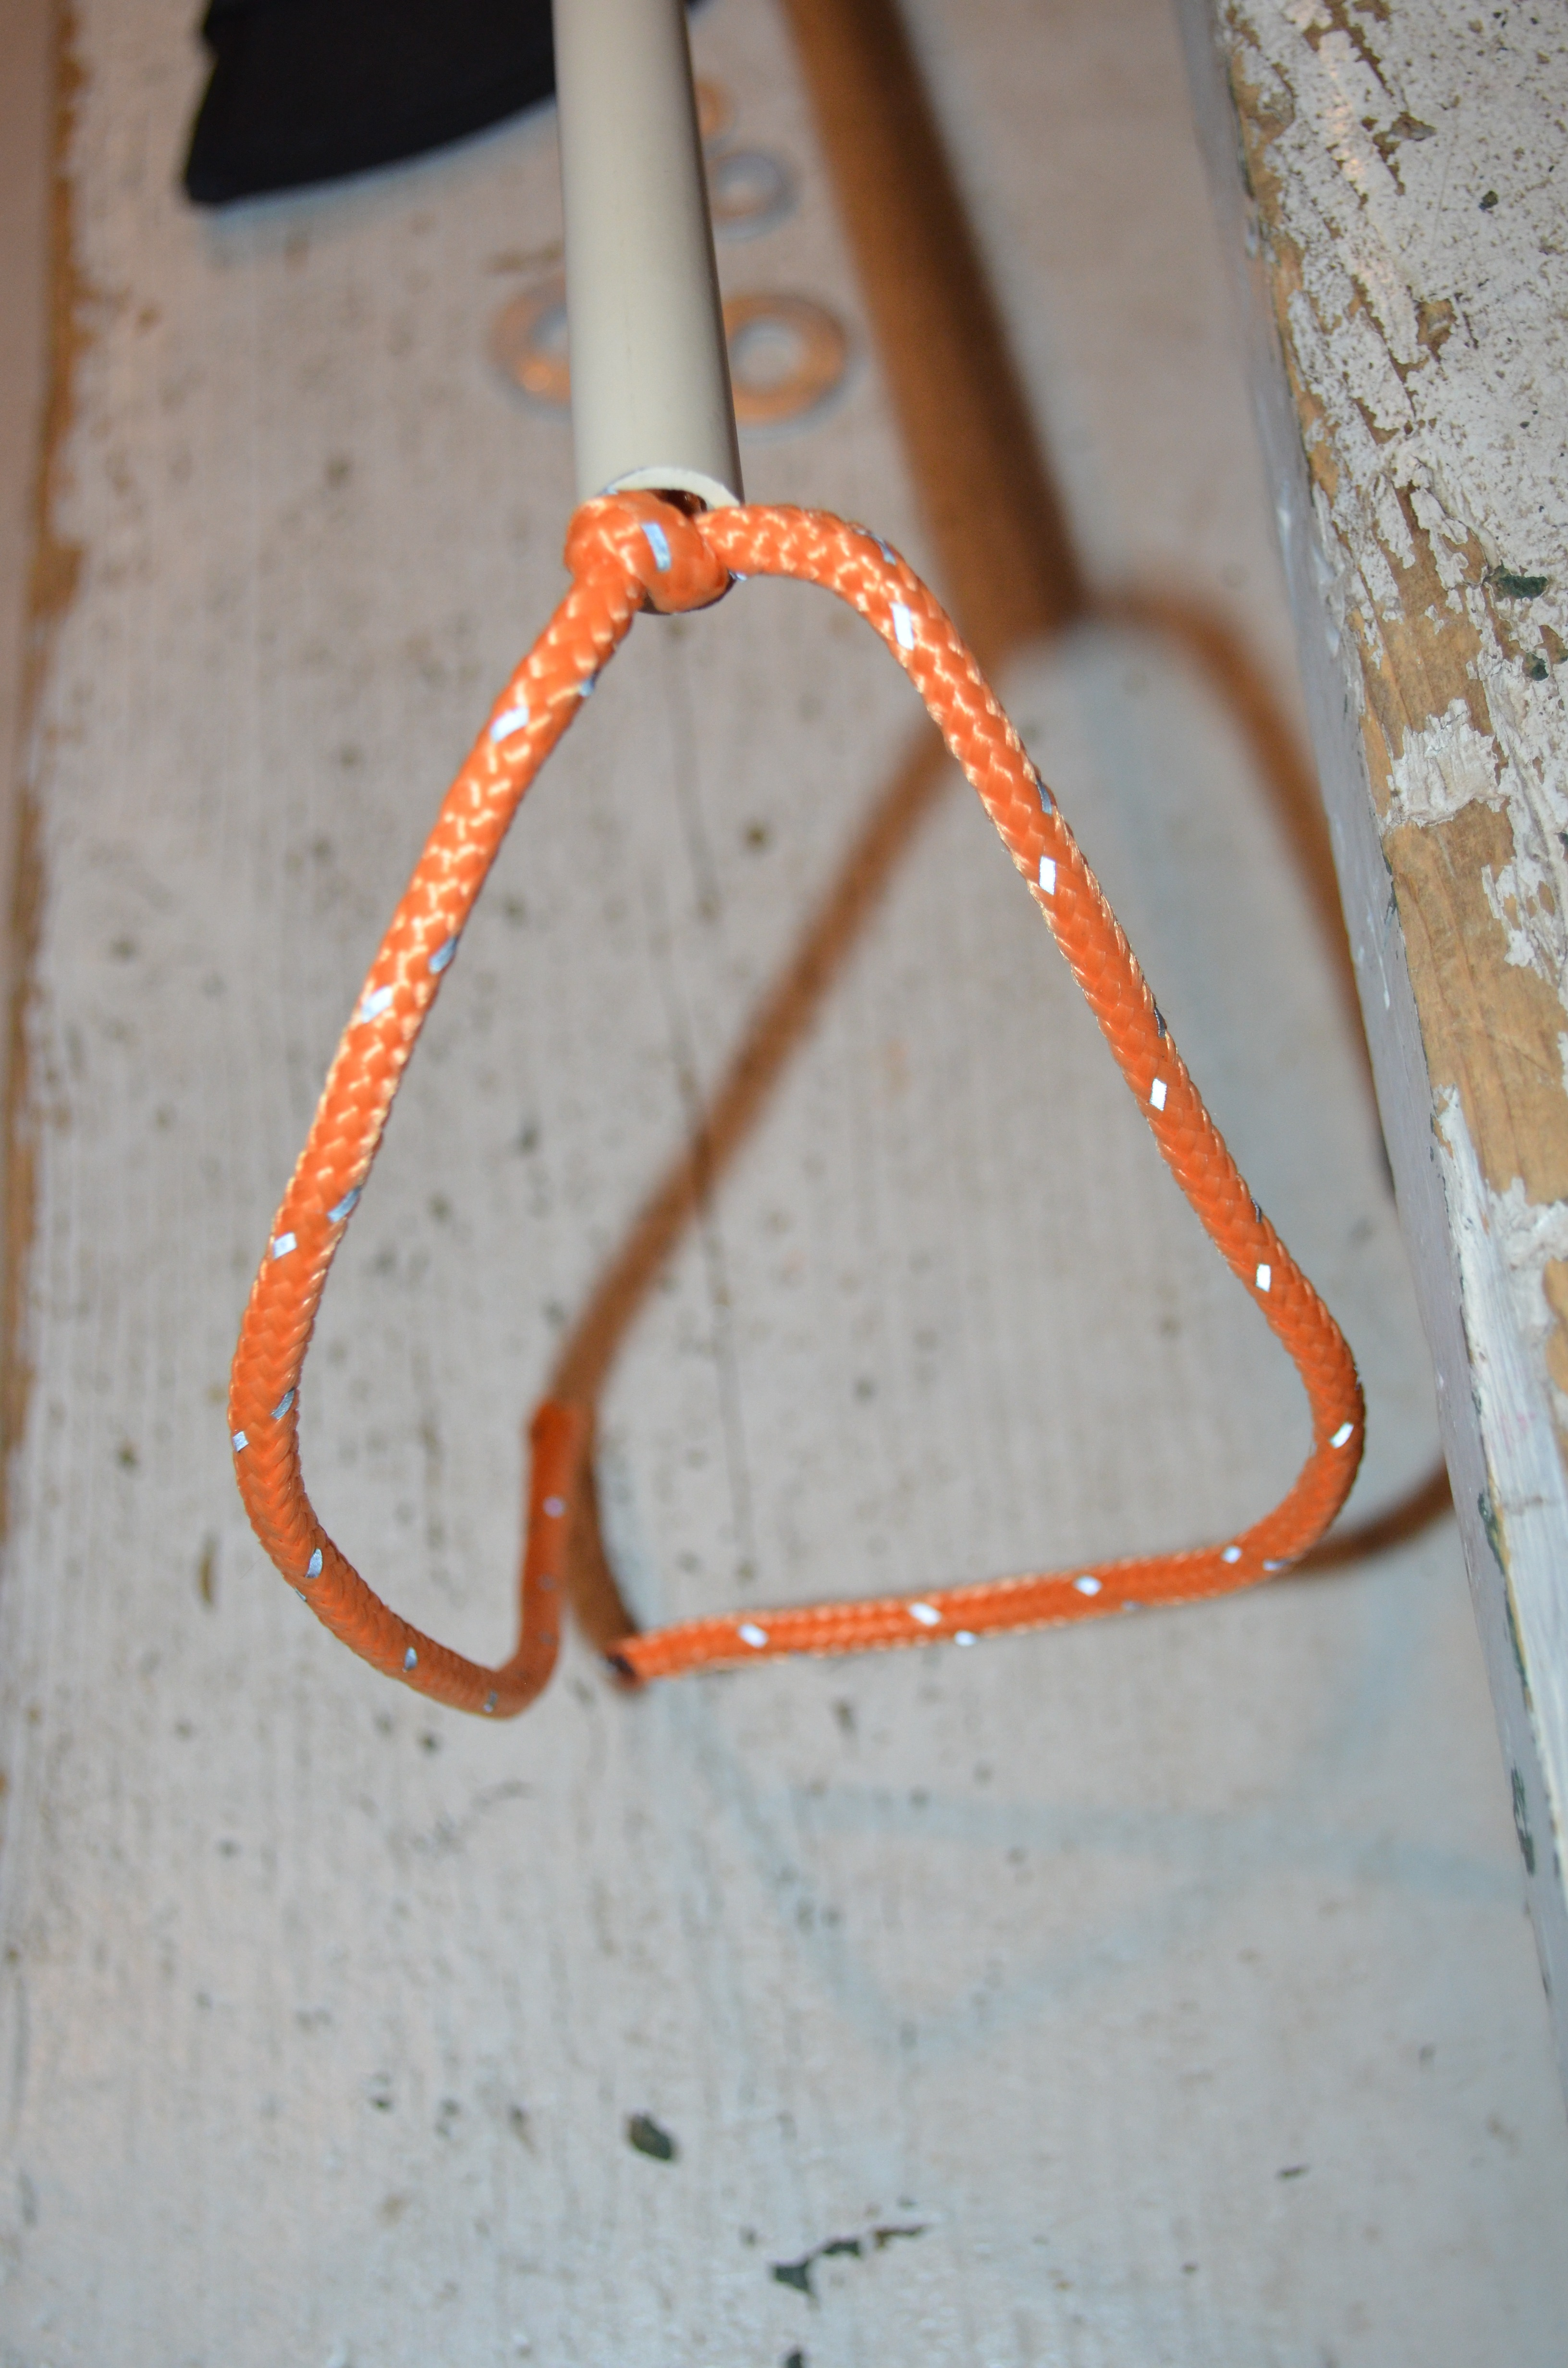 Picture of Attach Carabiners.